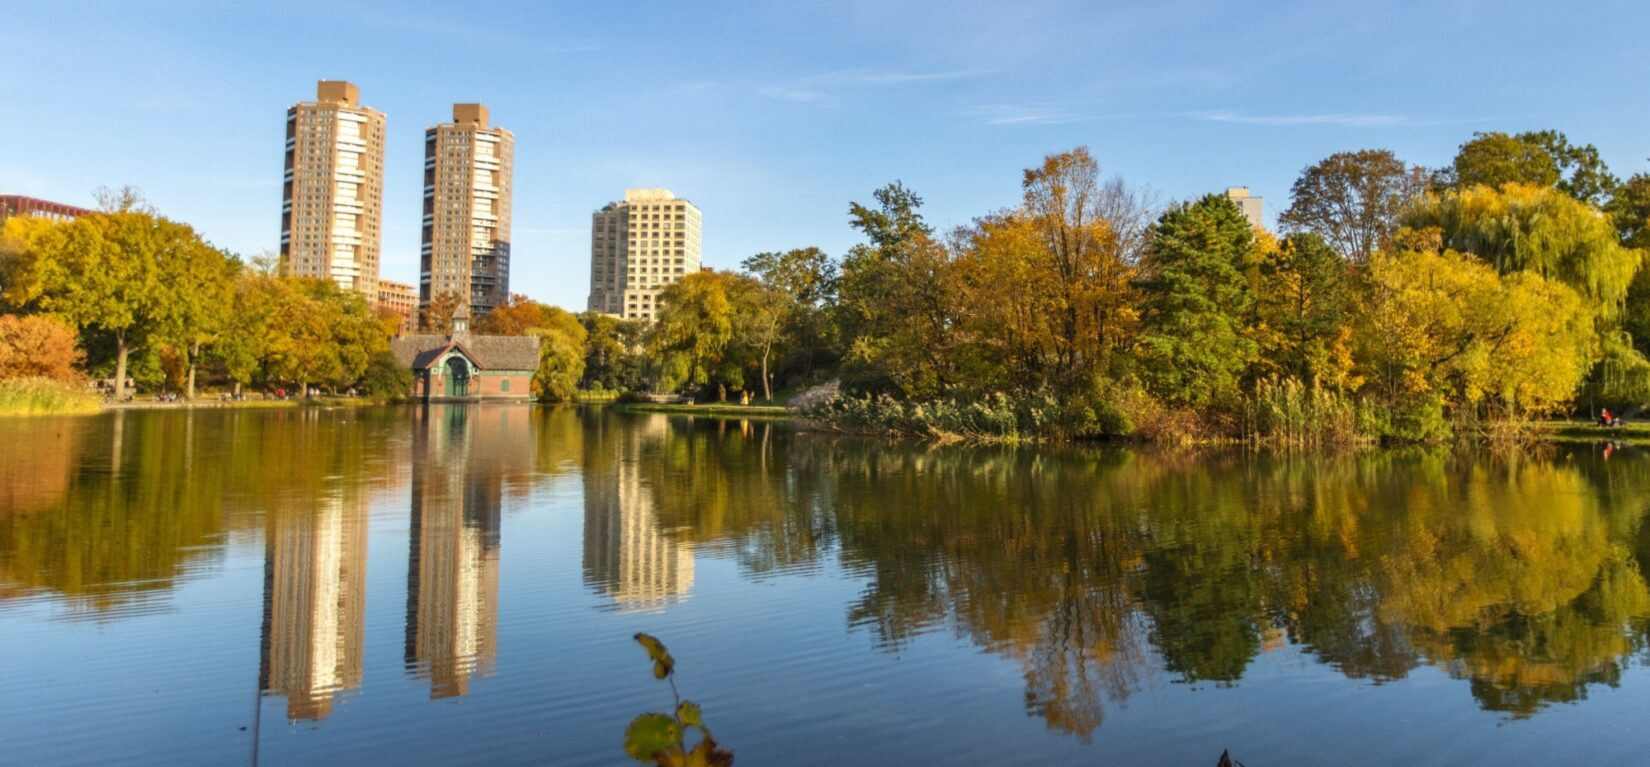 A view across the Harlem Meer, showing the Dana Discovery Center on the far shore and the skyline of Harlem behind it.